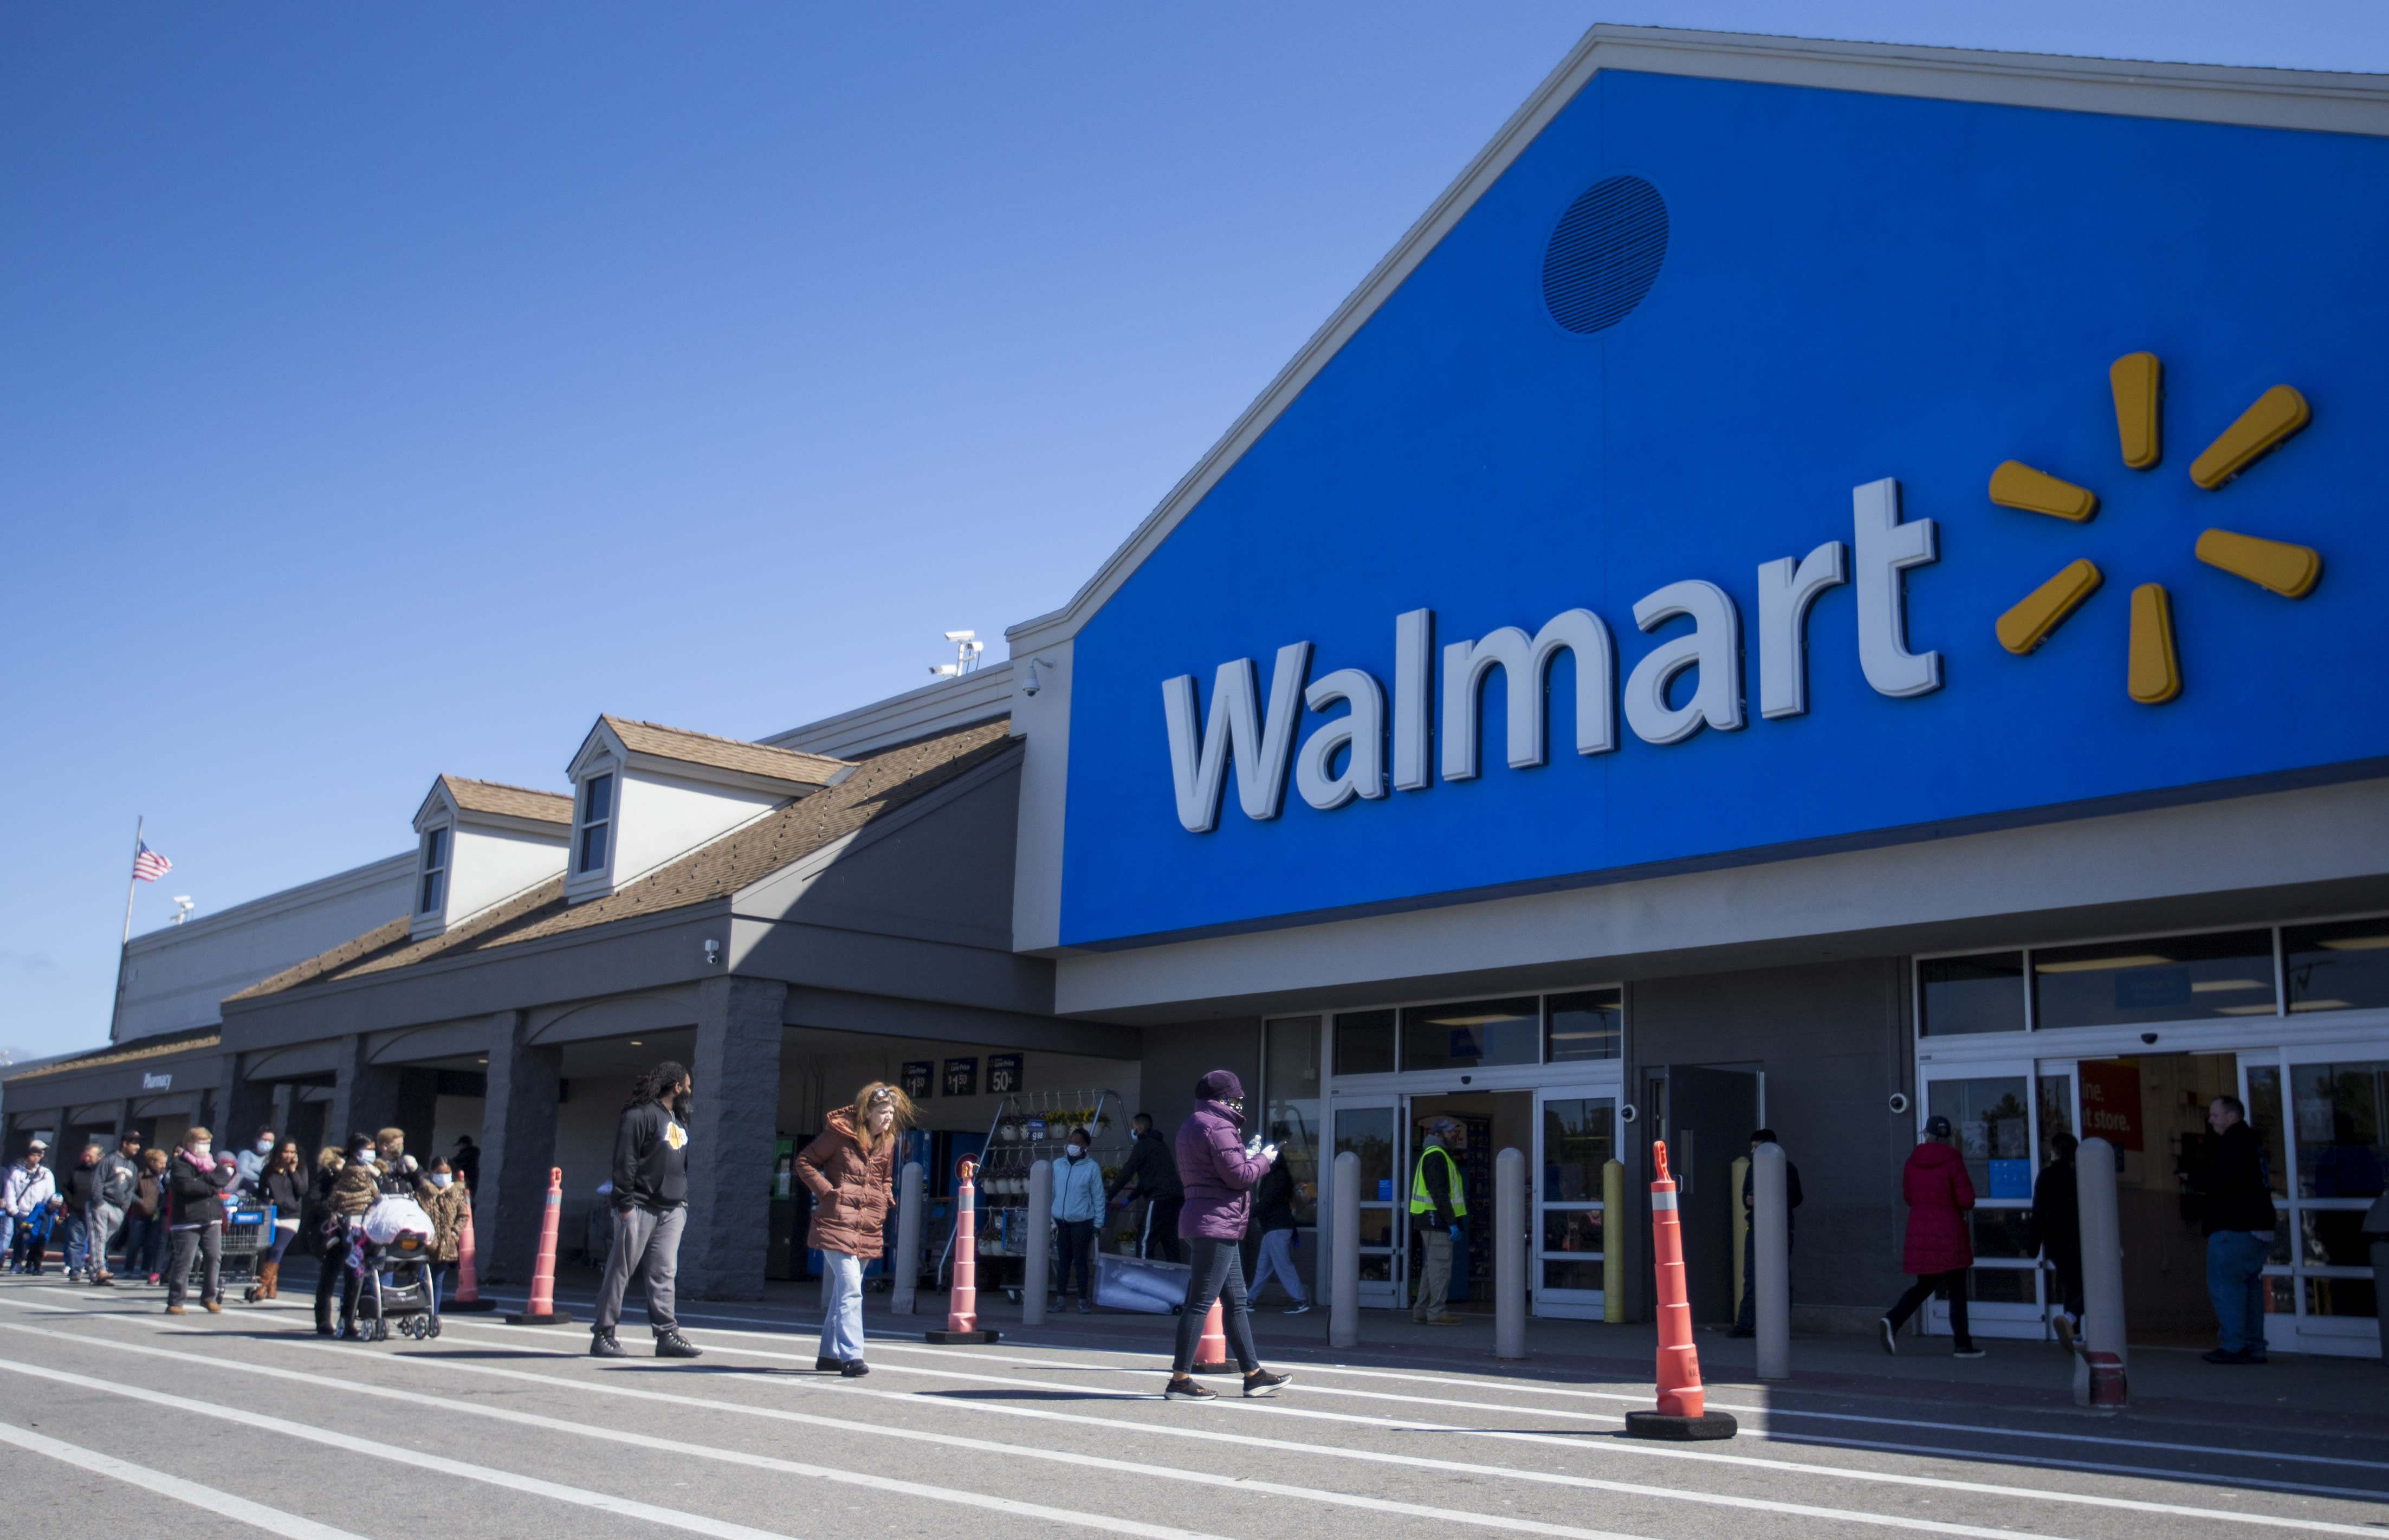 Walmart Q1 boosted by 74% surge in online coronavirus buying, sales jump 10%